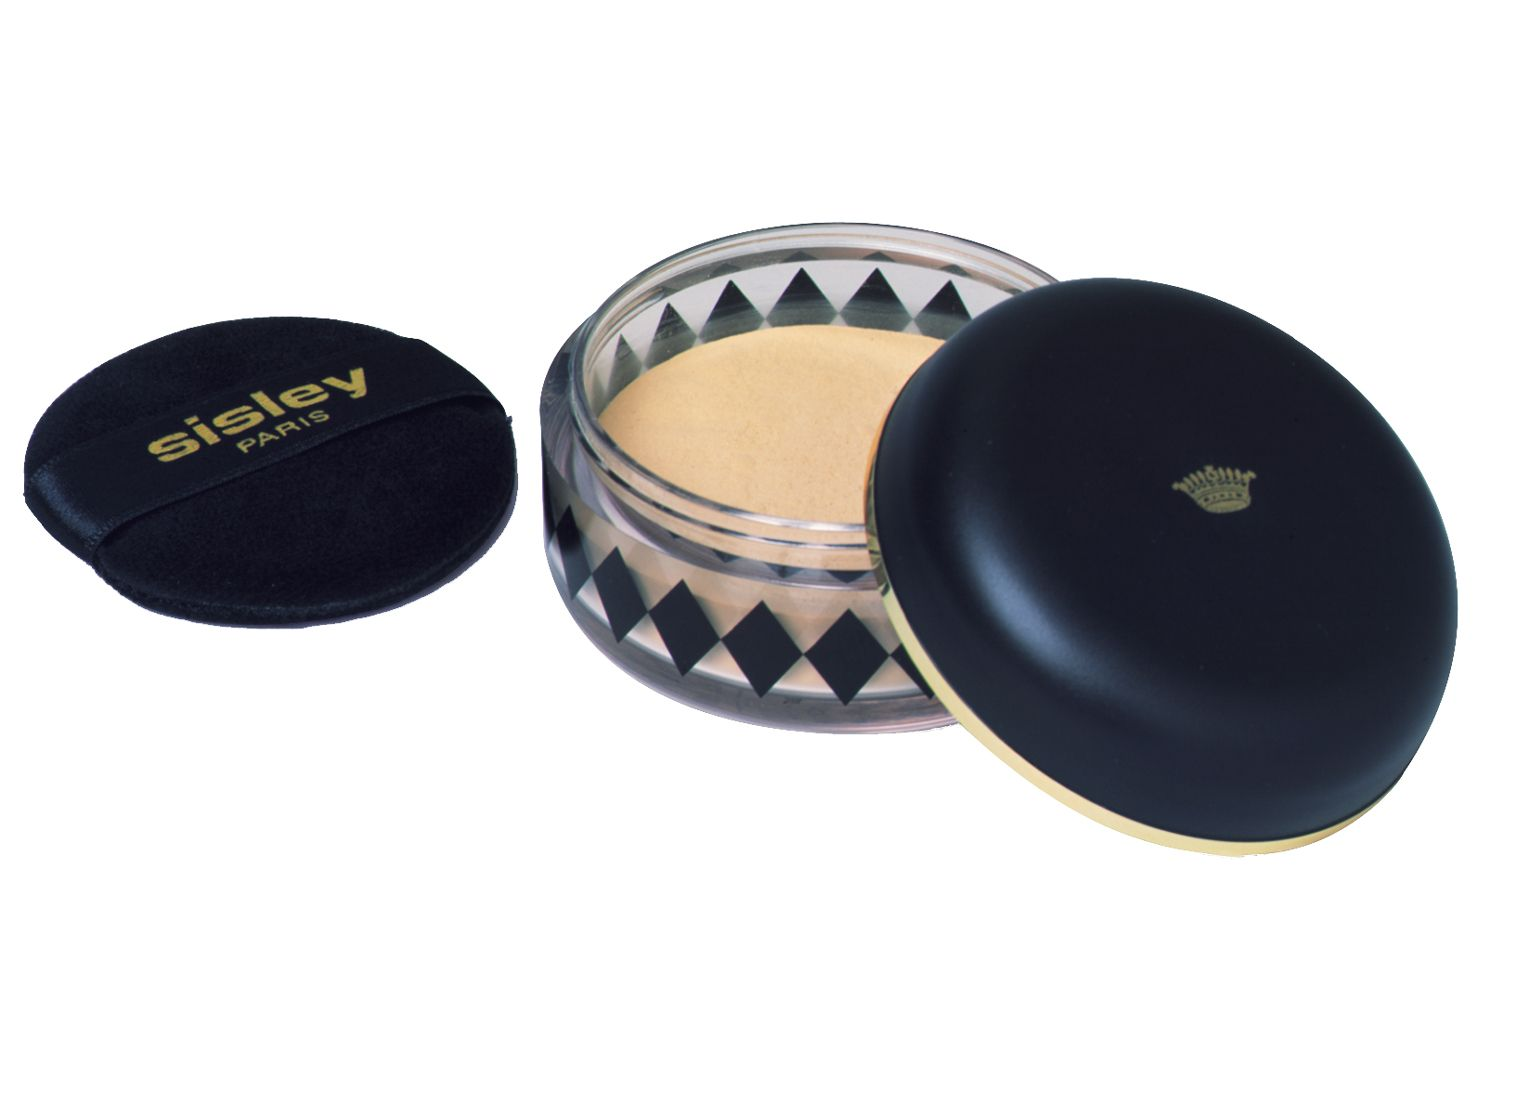 Transparent Loose Powder 17g